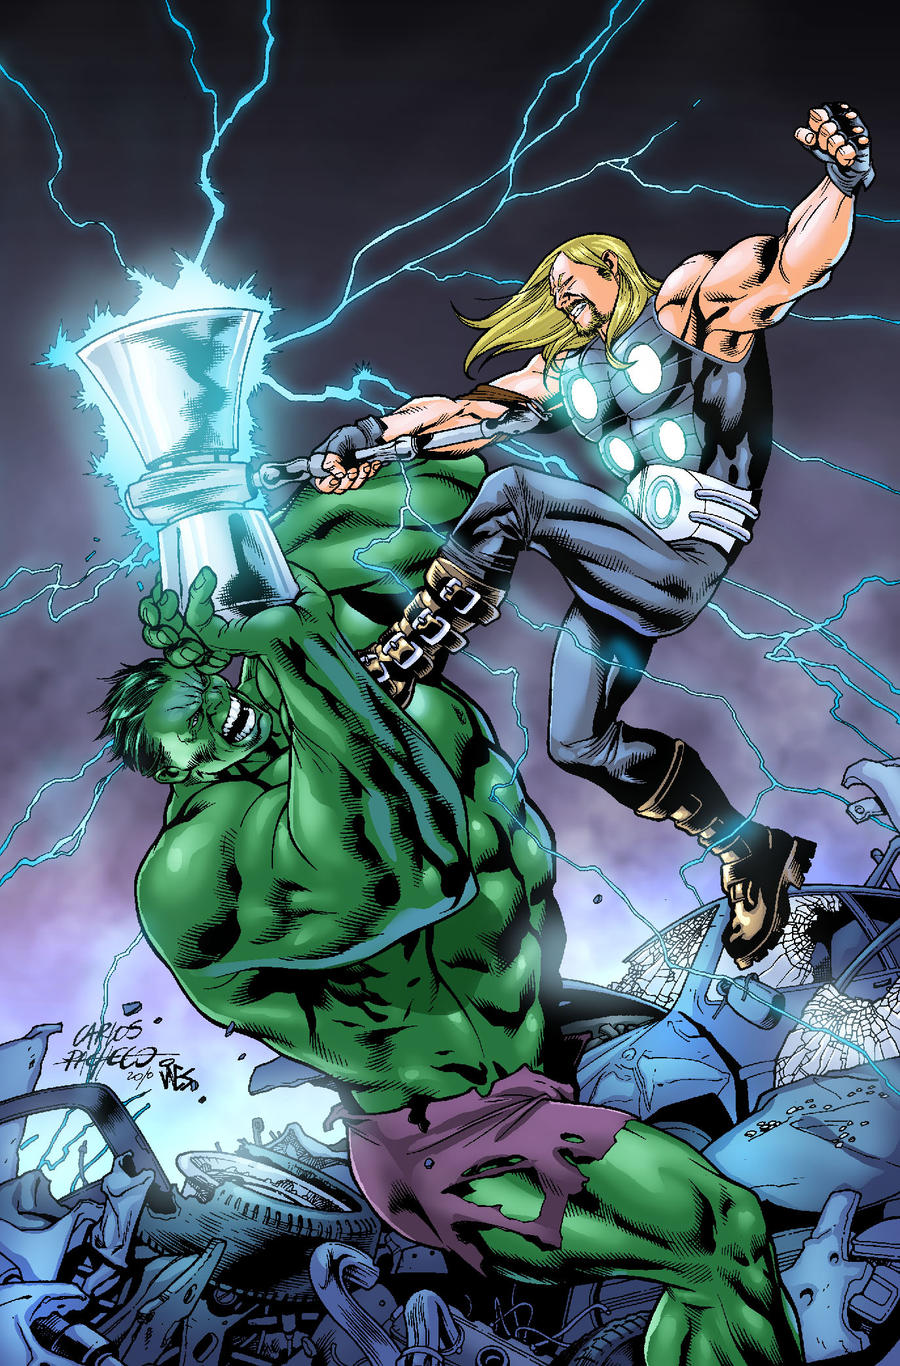 Ultimate Thor vs Hulk by GreeneLantern